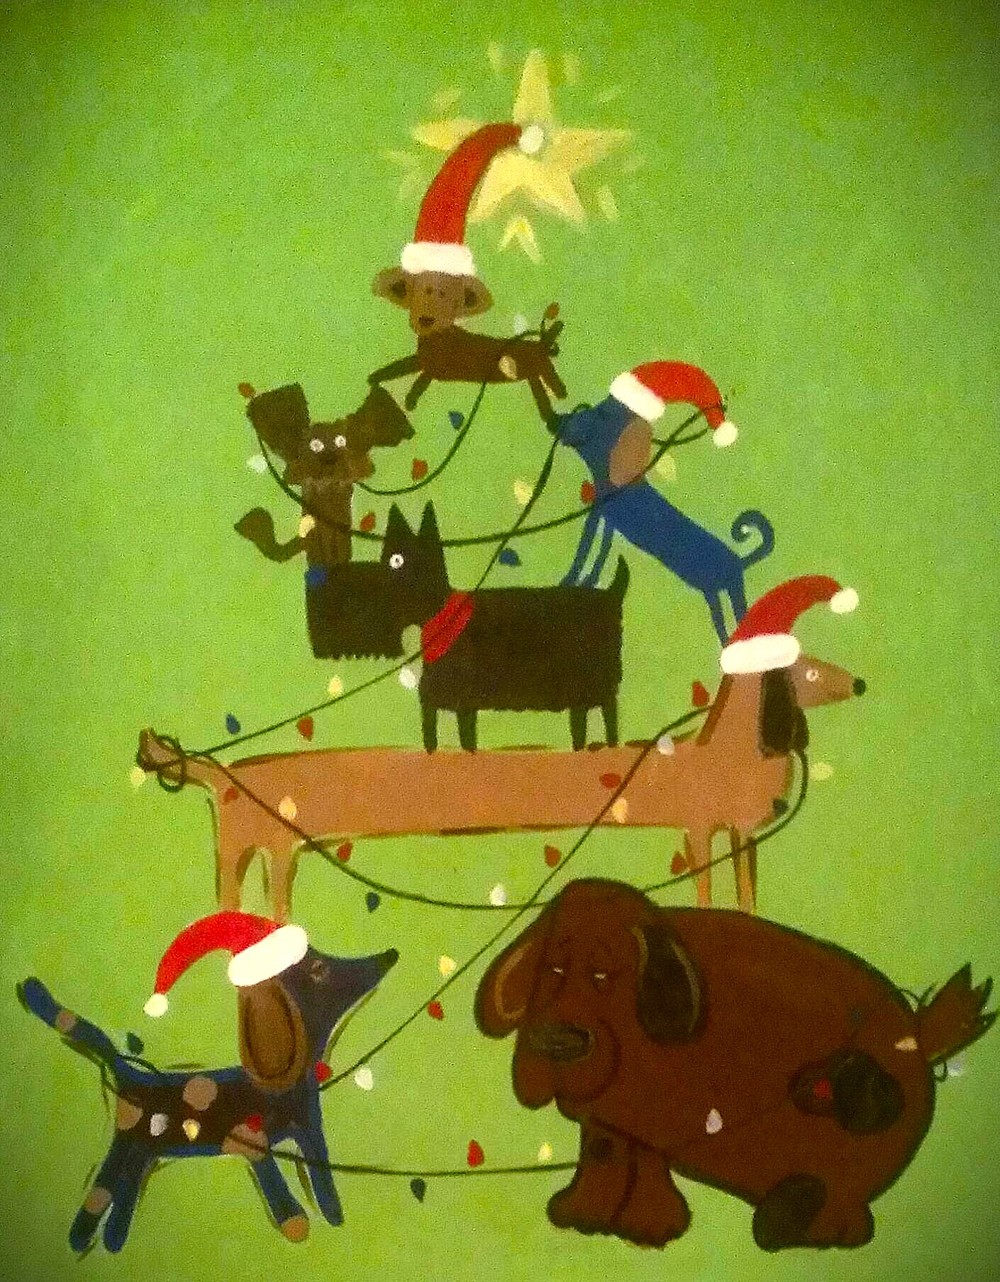 Christmas Tree Dogs.jpg